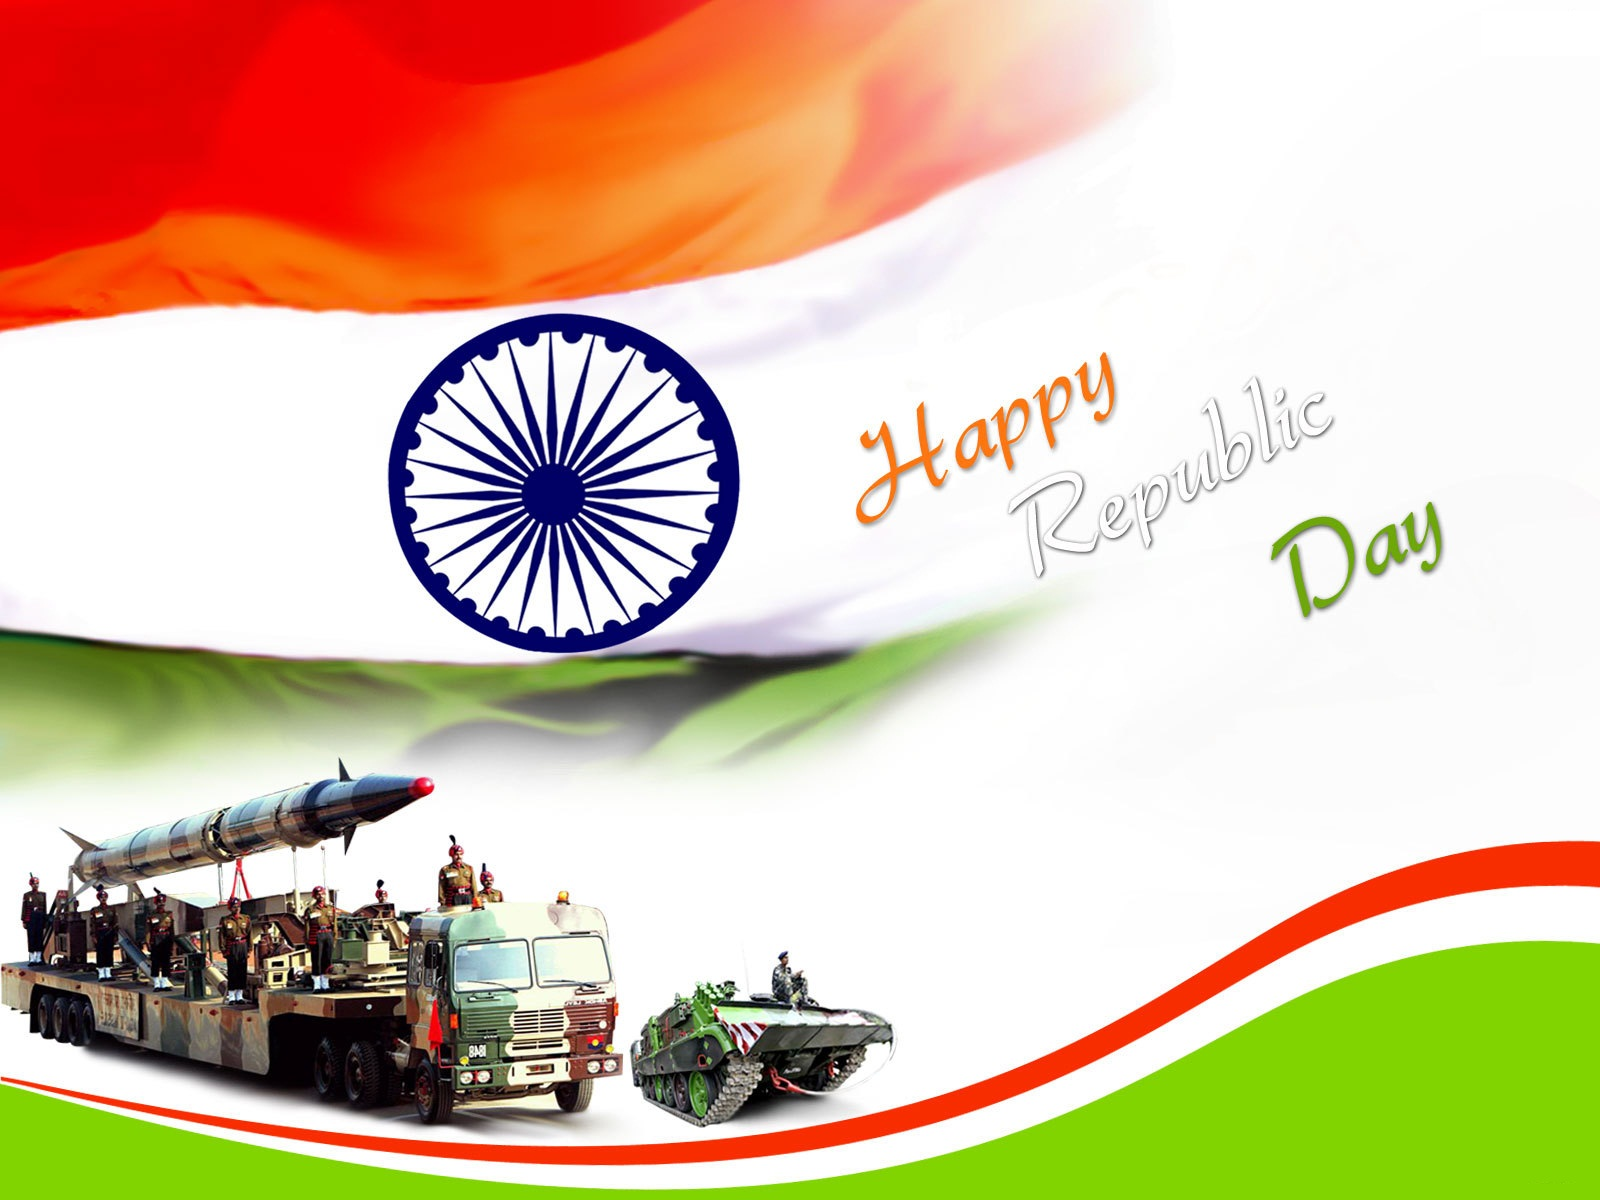 2015 India Republic Day HD Wallpapers Images [ Download] 1600x1200